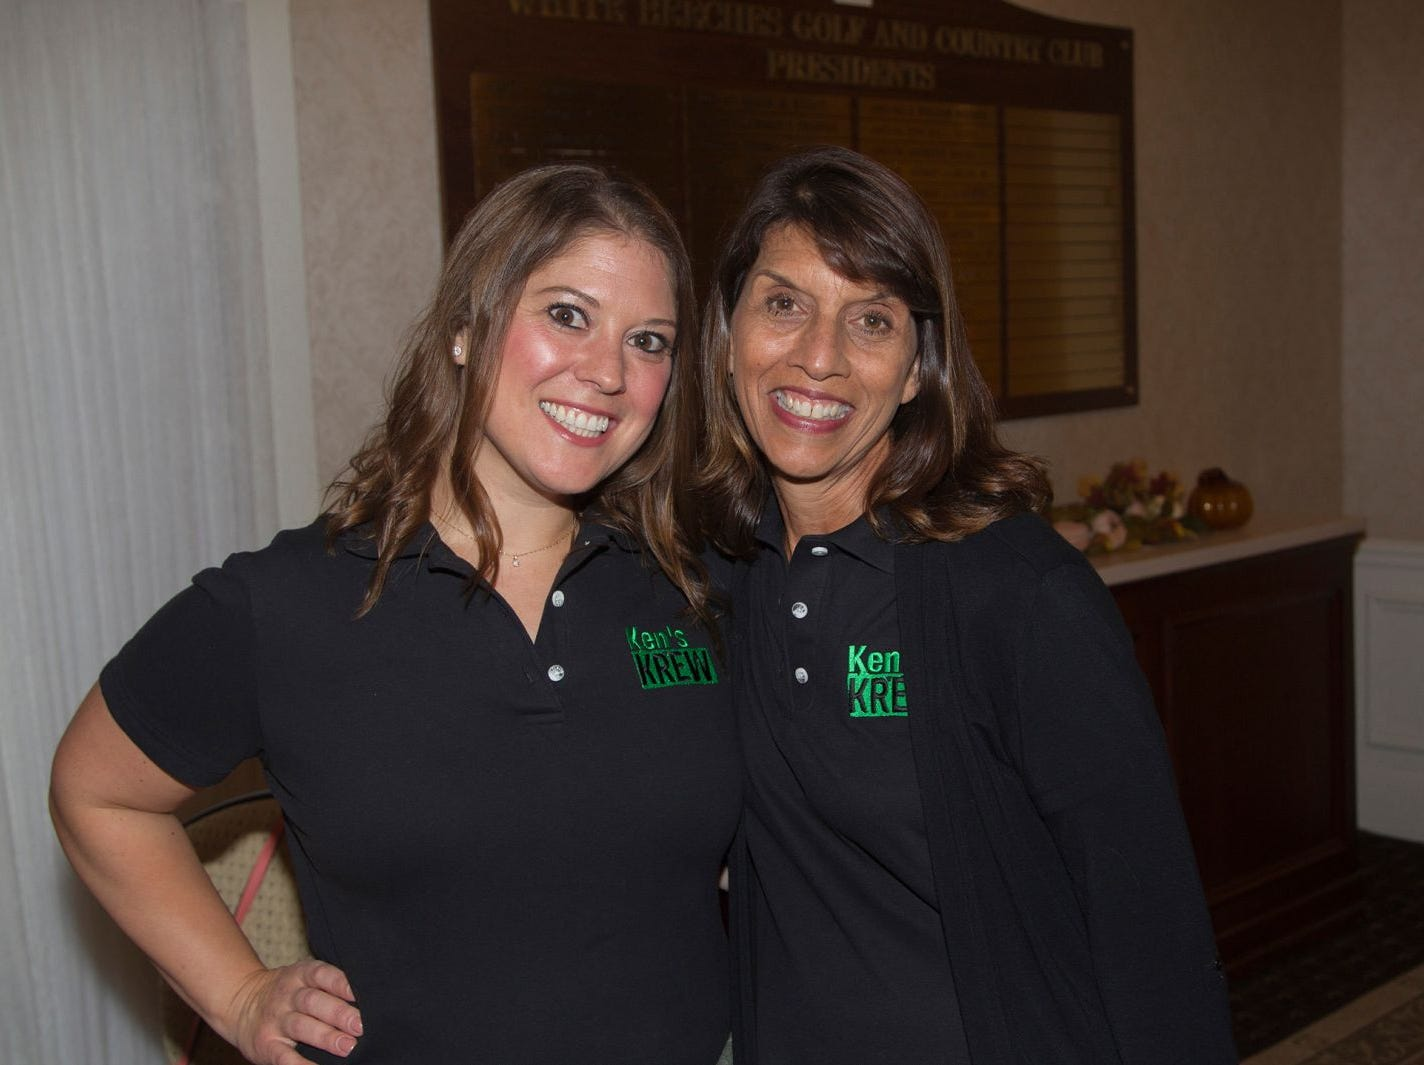 Jailynn Worster and Diane Macaluso. Ken's Krew Golf Outing at White Beeches Country Club in Haworth. Ken's Krew provides vocational training and job placement services for young adults with intellectual and developmental disabilities. 10/09/2018